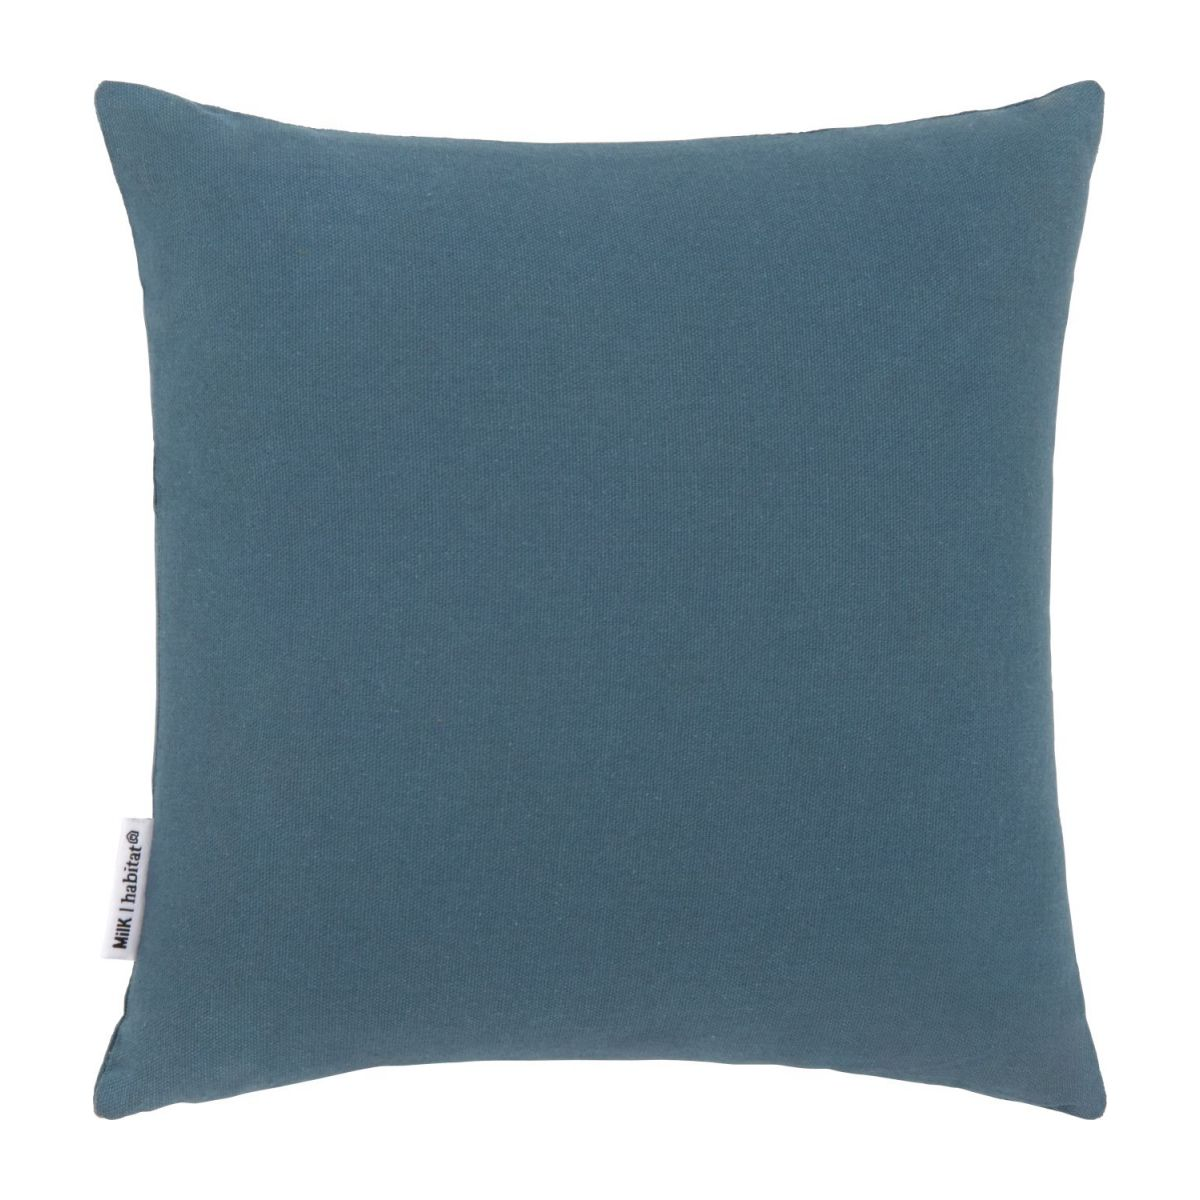 Cushion made of cotton 30x30, blue with radish pattern n°3